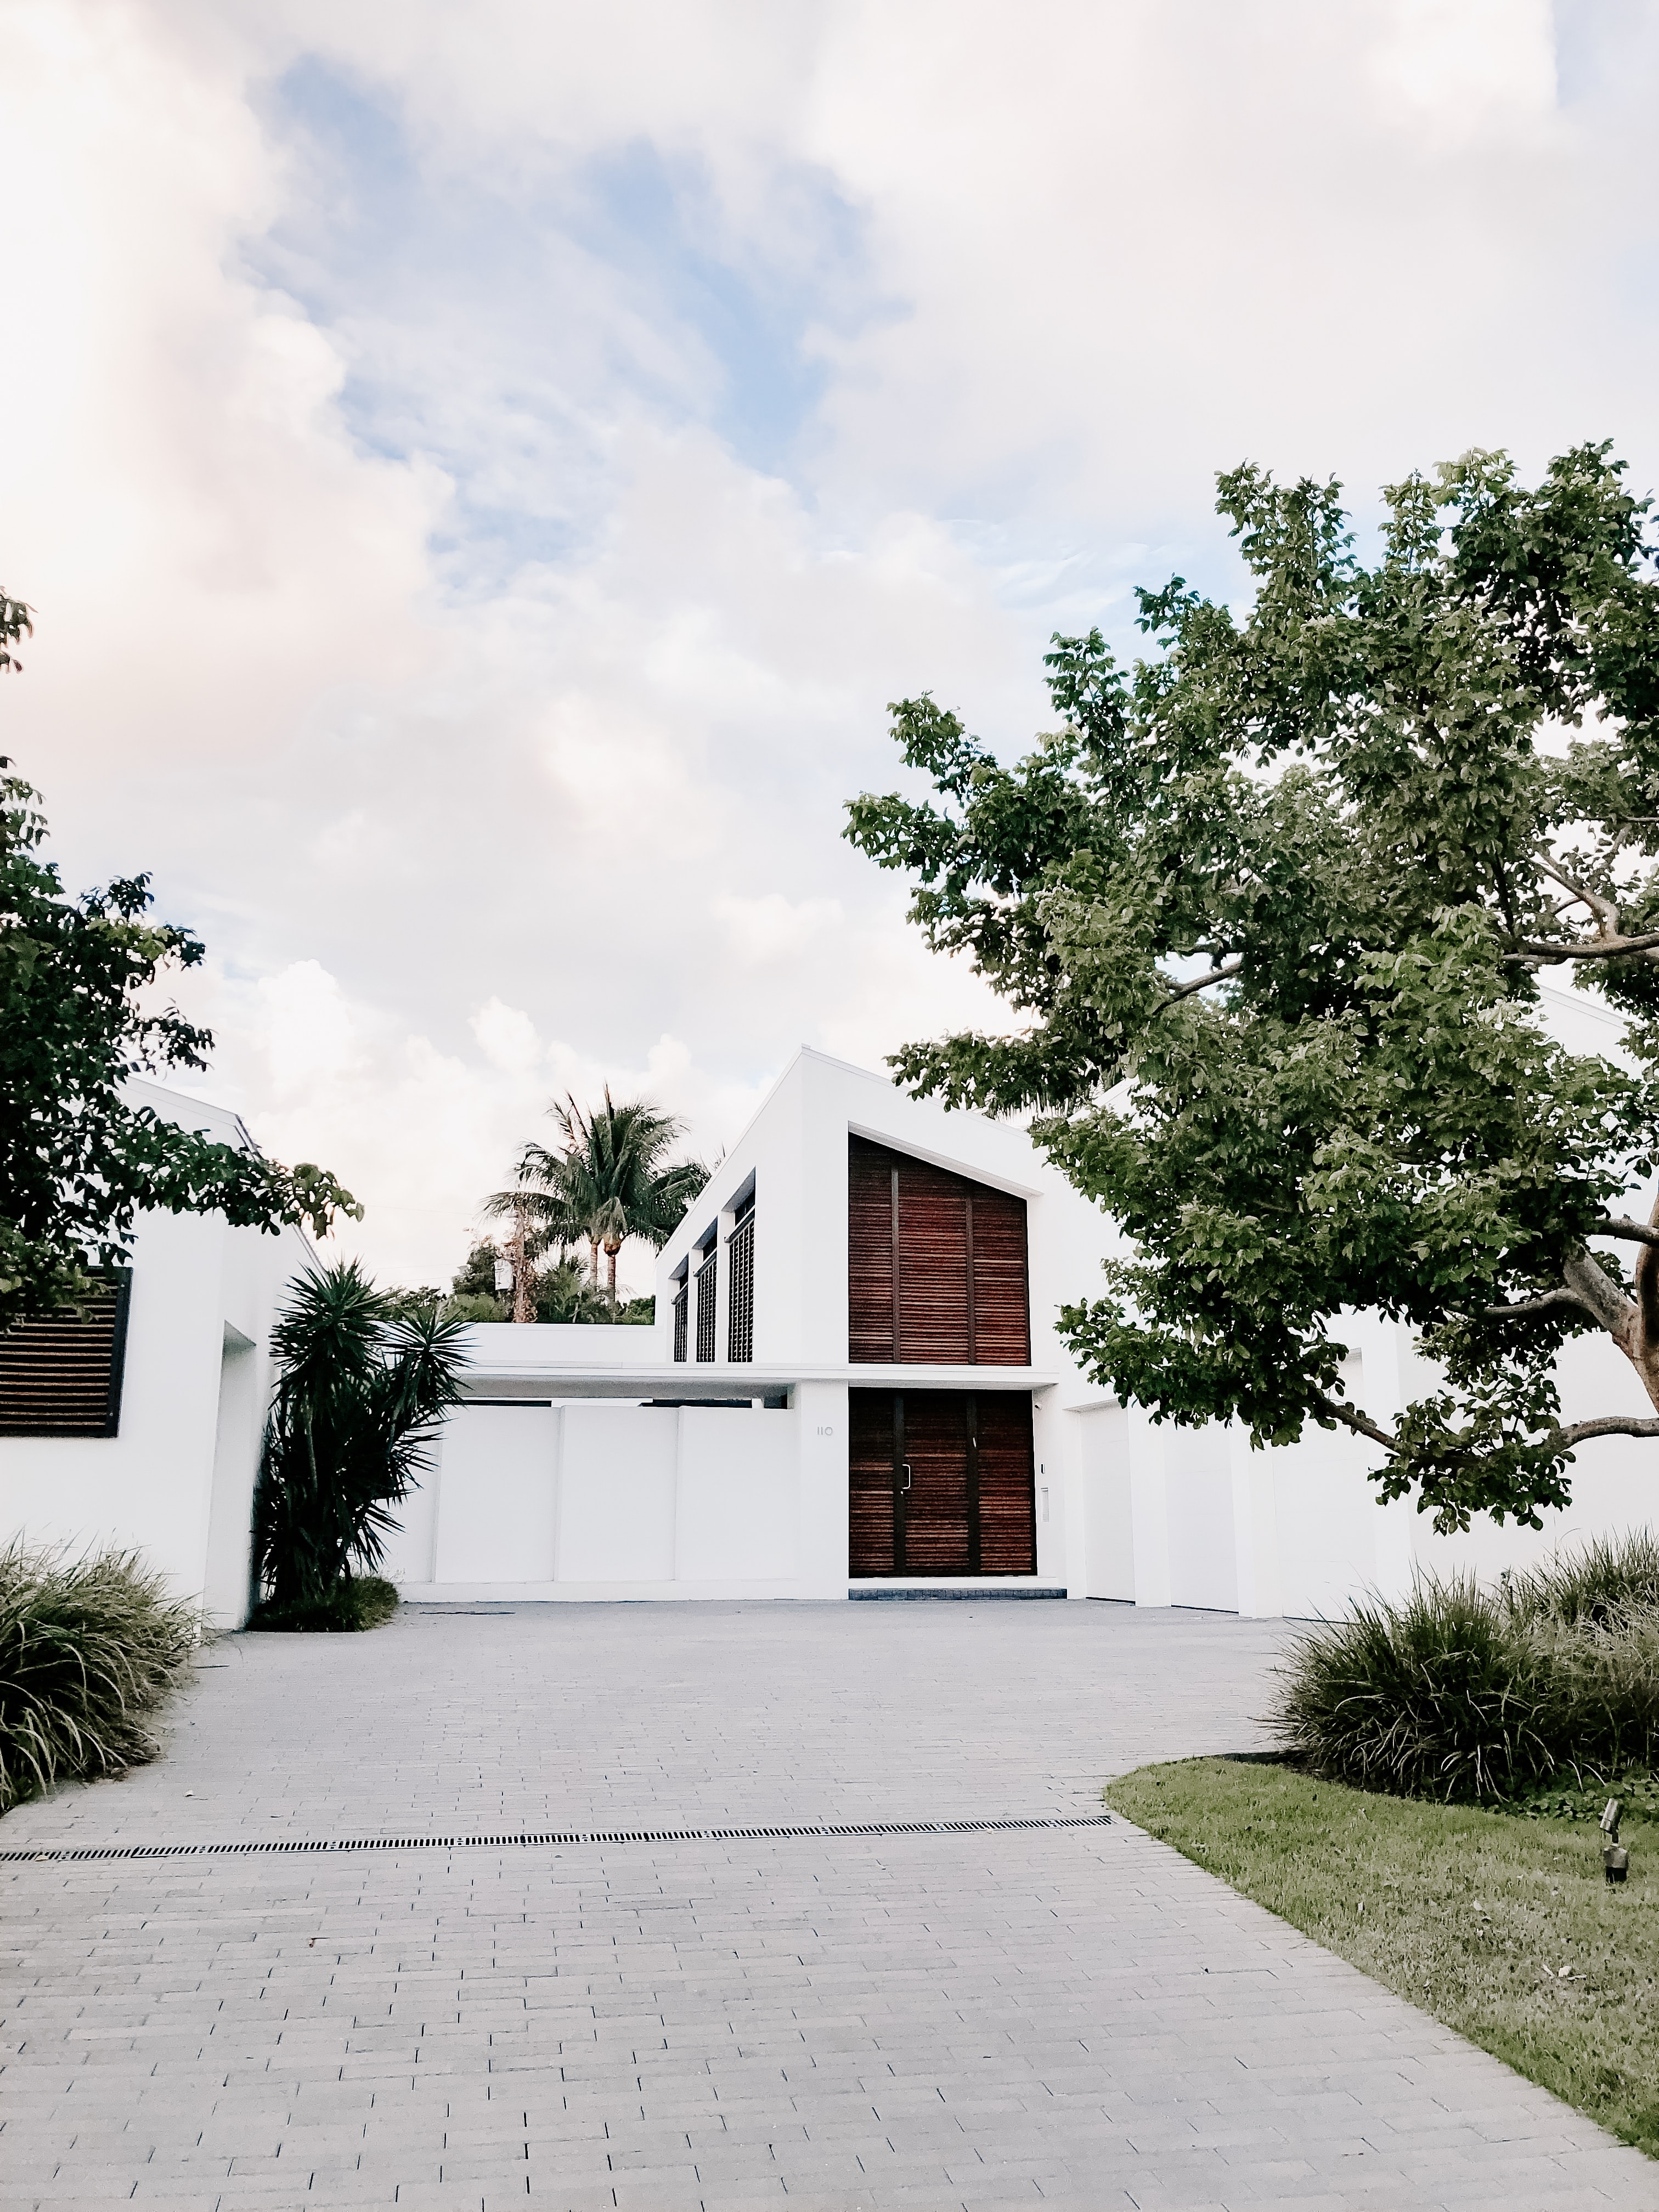 white concrete house surrounded with trees